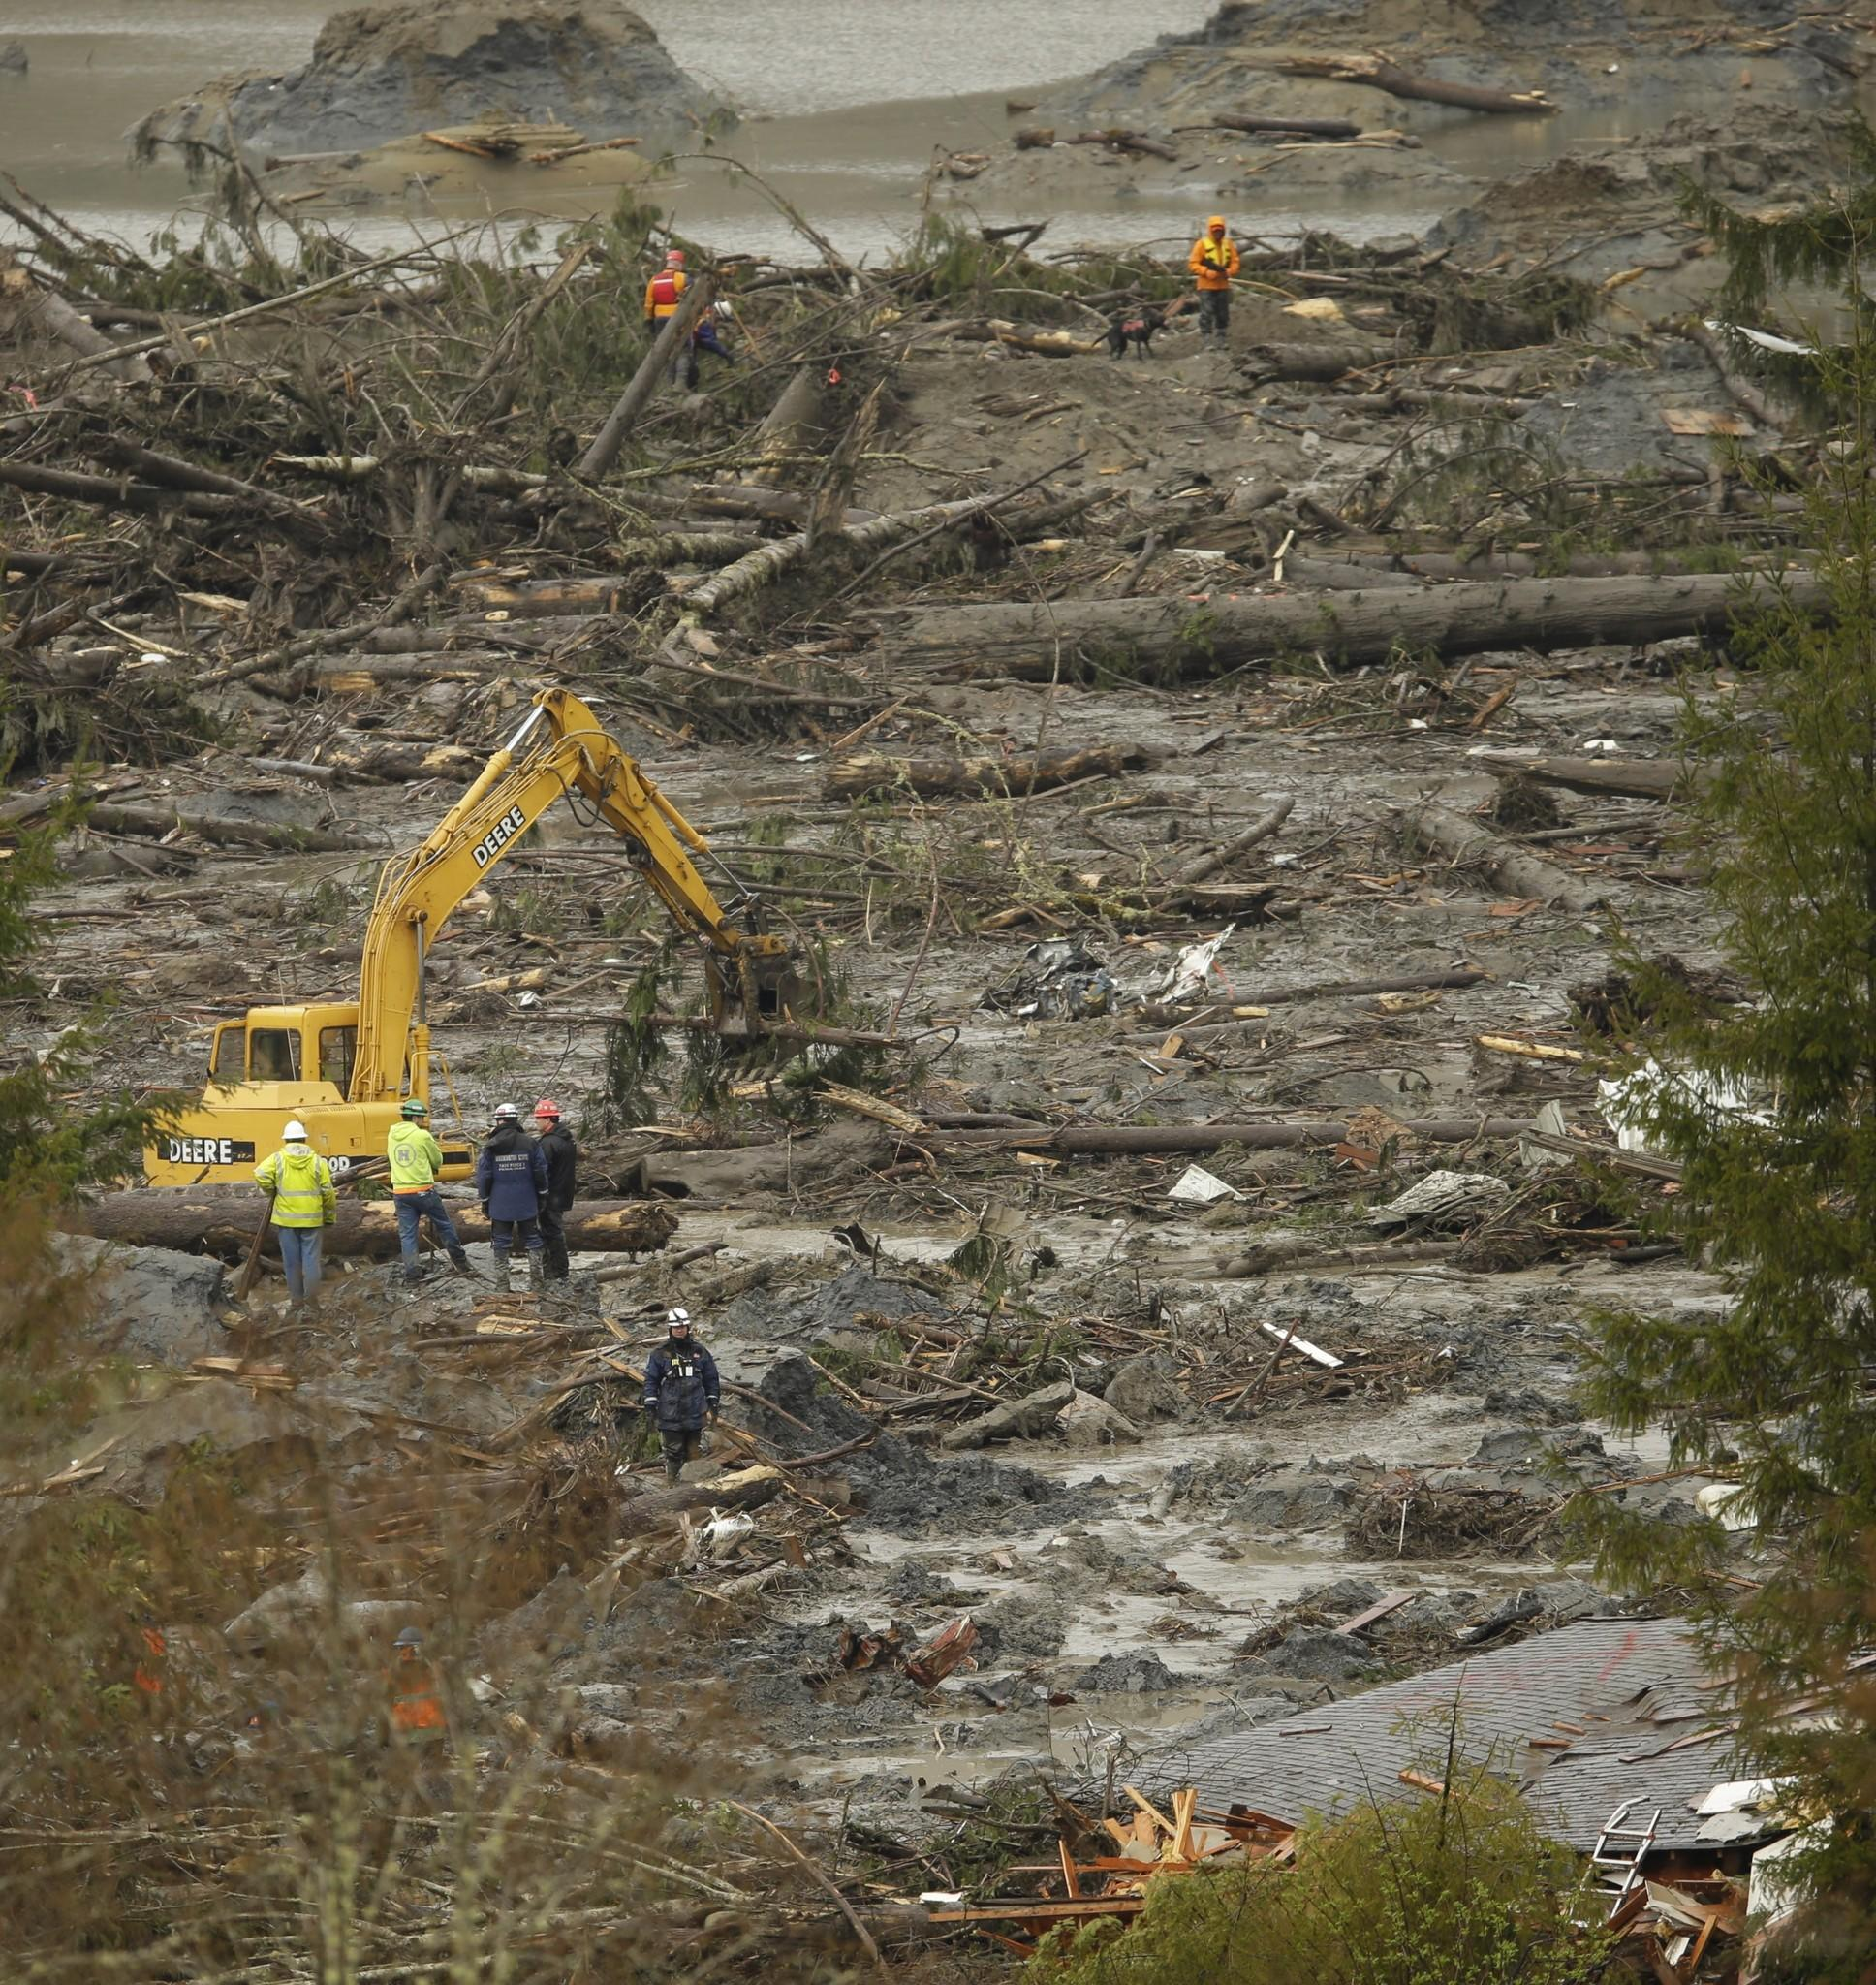 Search and rescue teams continue to work in Oso, Wash.